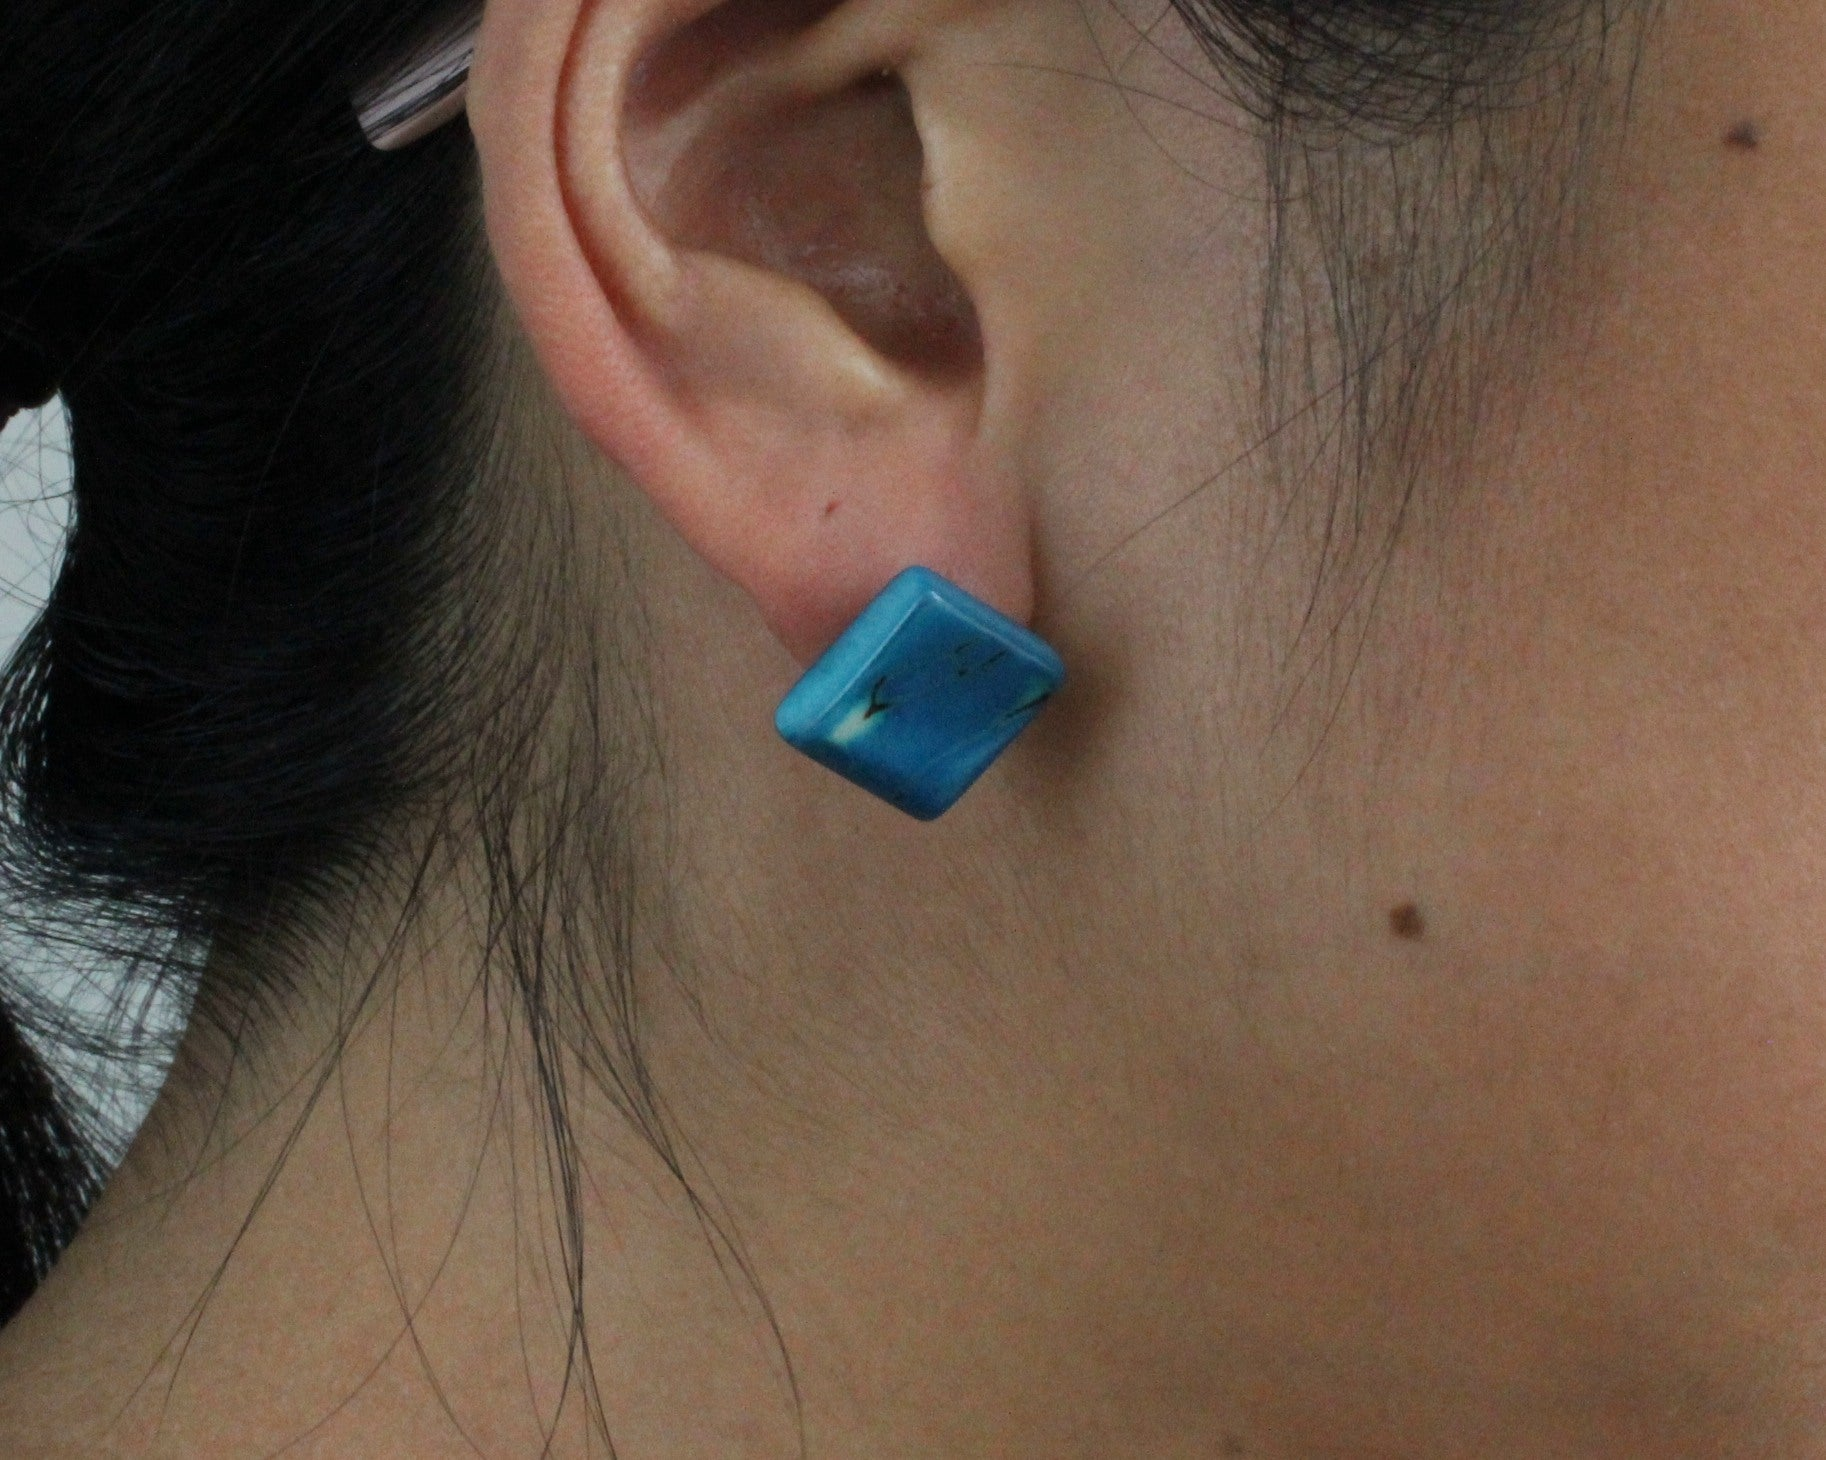 Handmade earring, sustainable, tagua, stud, push back, turquoise, ear